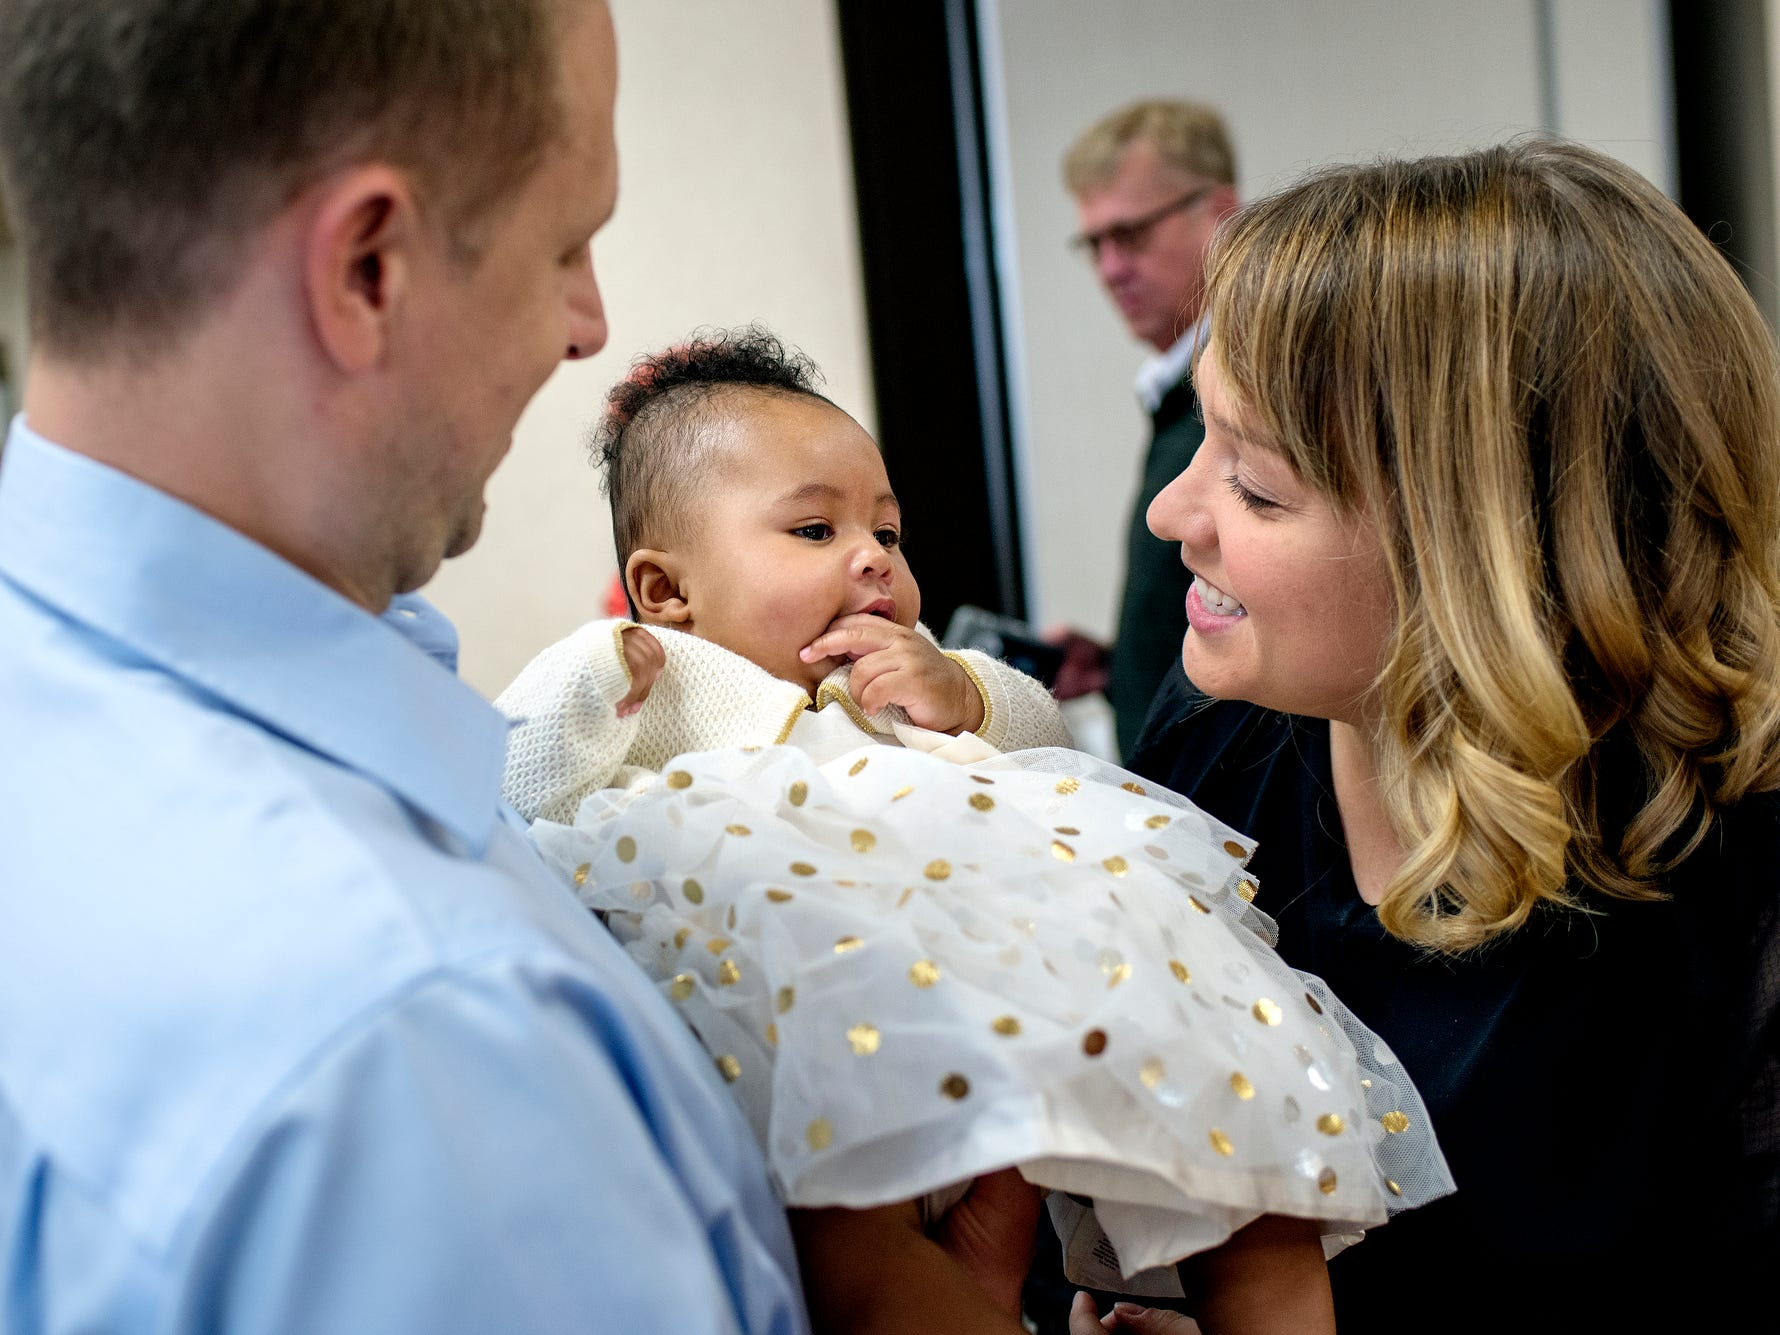 Jami Thelen, left, and his wife Erin interact with Ella before the St. Johns couple finalizes the adoption of the five month old during a Michigan Adoption Day ceremony at the Clinton County Courthouse in St. Johns. Four families finalized the adoptions of six children.